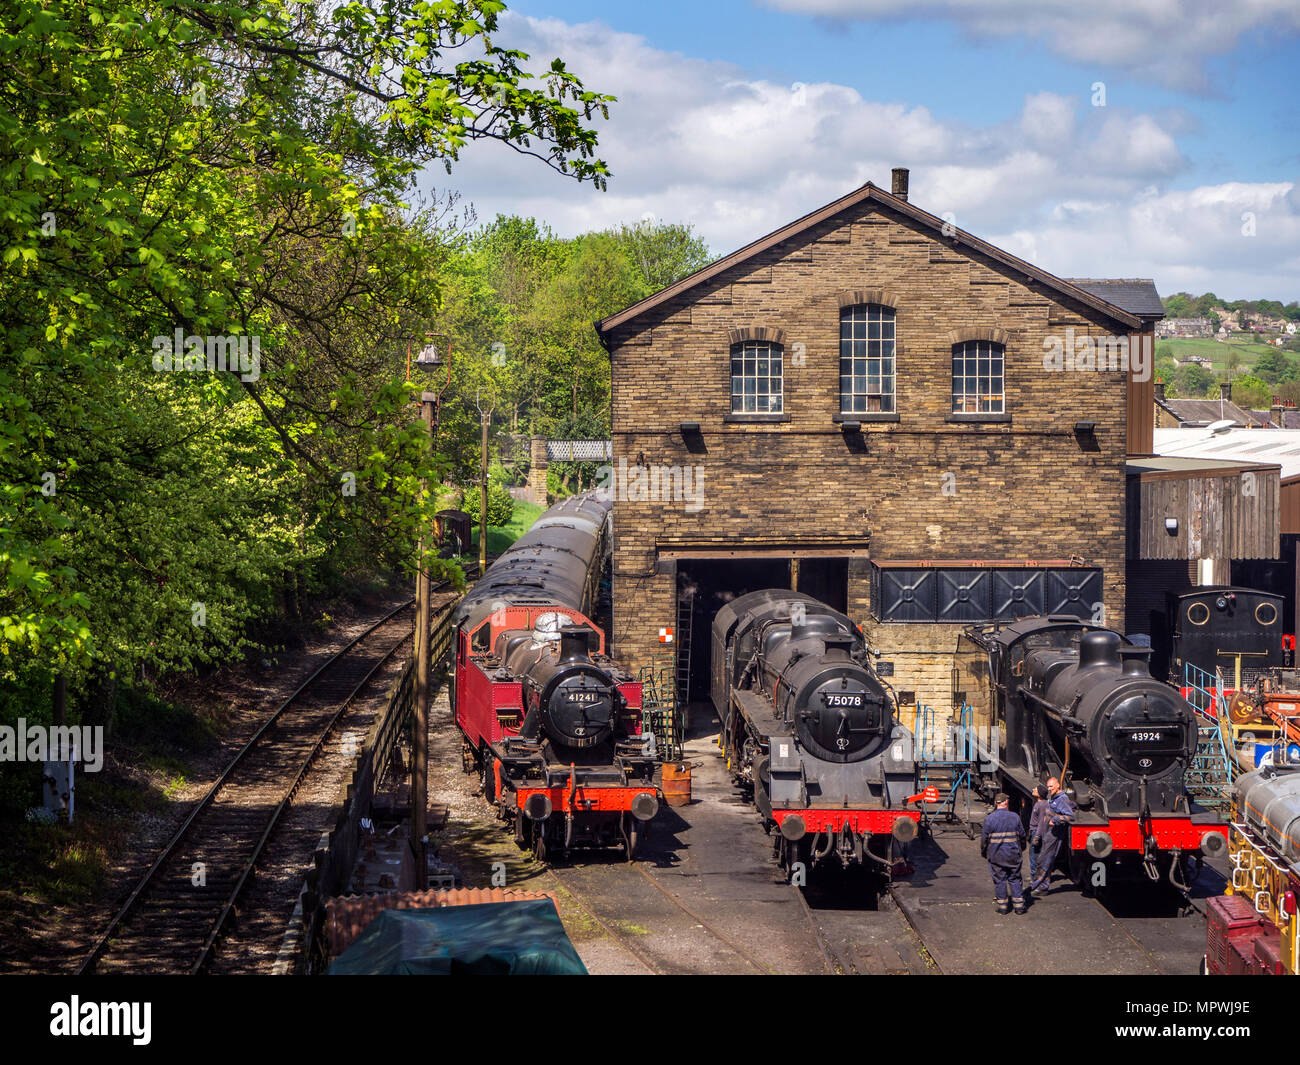 Steam Locomotives at the engine sheds on the Keighley and Worth Valley Railway at Haworth West Yorkshire England - Stock Image